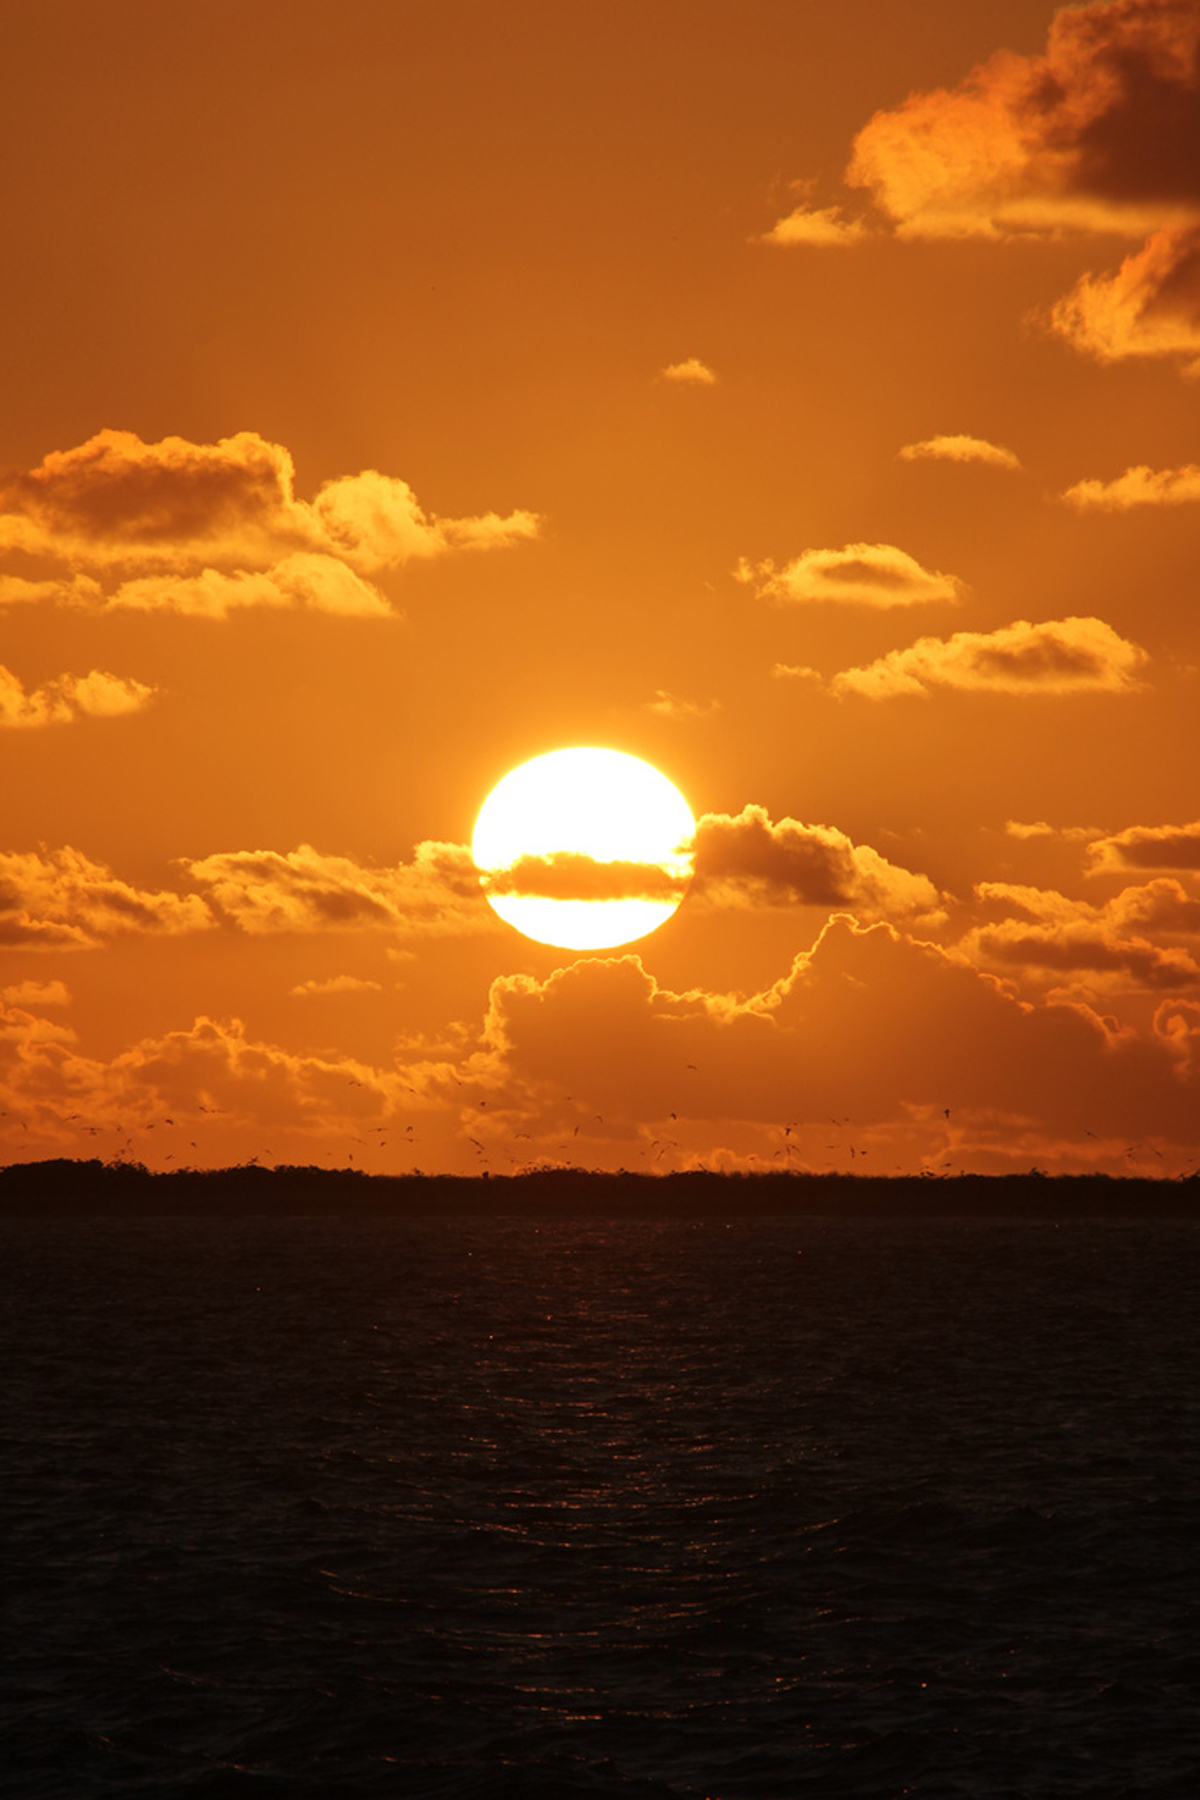 [Rising sun over Eastern Island, Midway Atoll] Photo by Andy Collins.